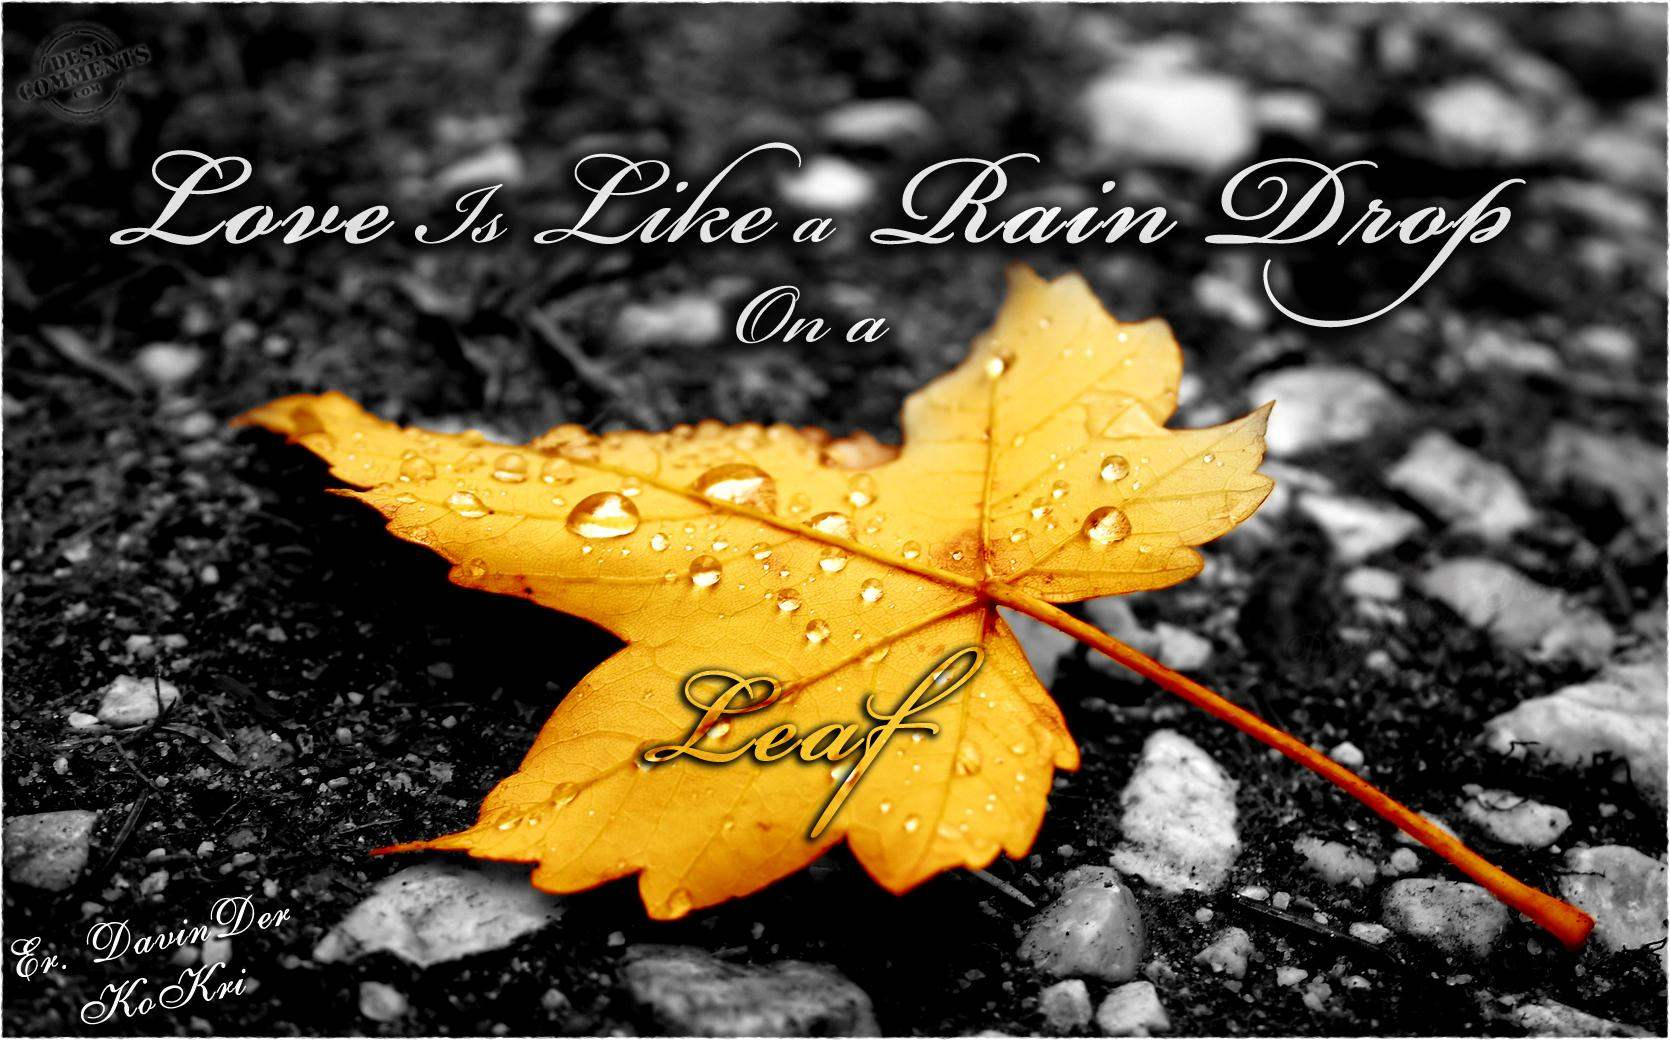 Drop Of Water Falling From A Leaf Wallpaper Love Is Like A Rain Drop On A Leaf Desicomments Com